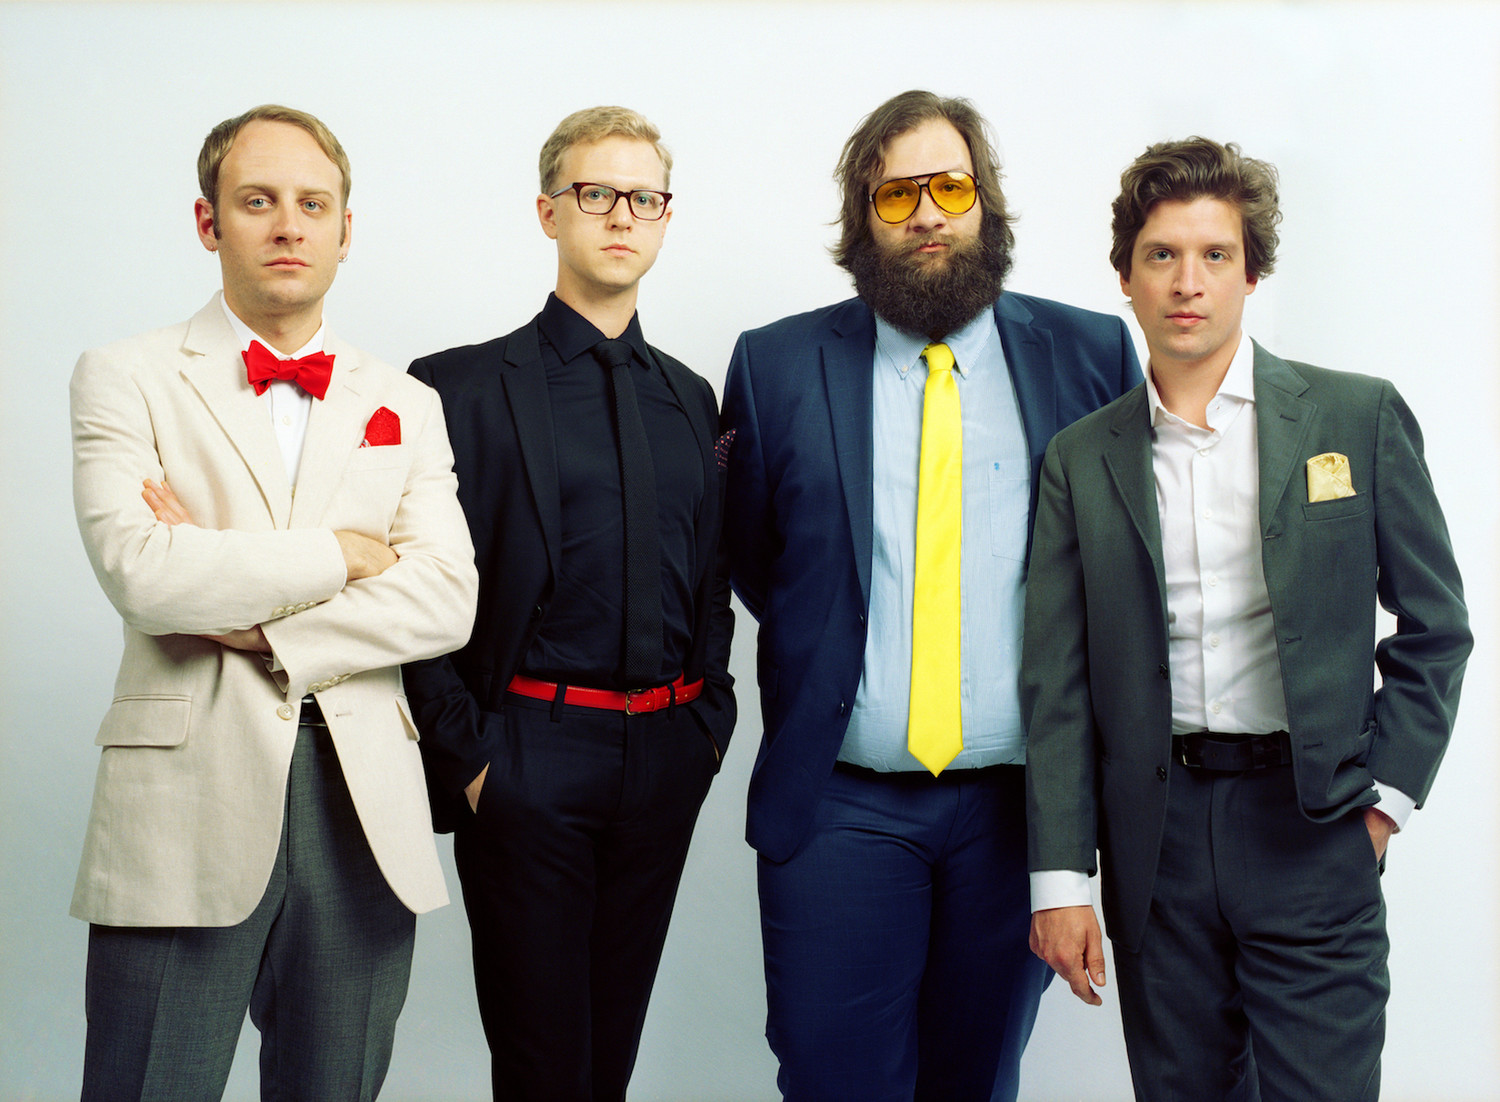 Deer Tick is (from left to right) John McCauley, Chris Ryan, Dennis Ryan and Ian O'Neil.